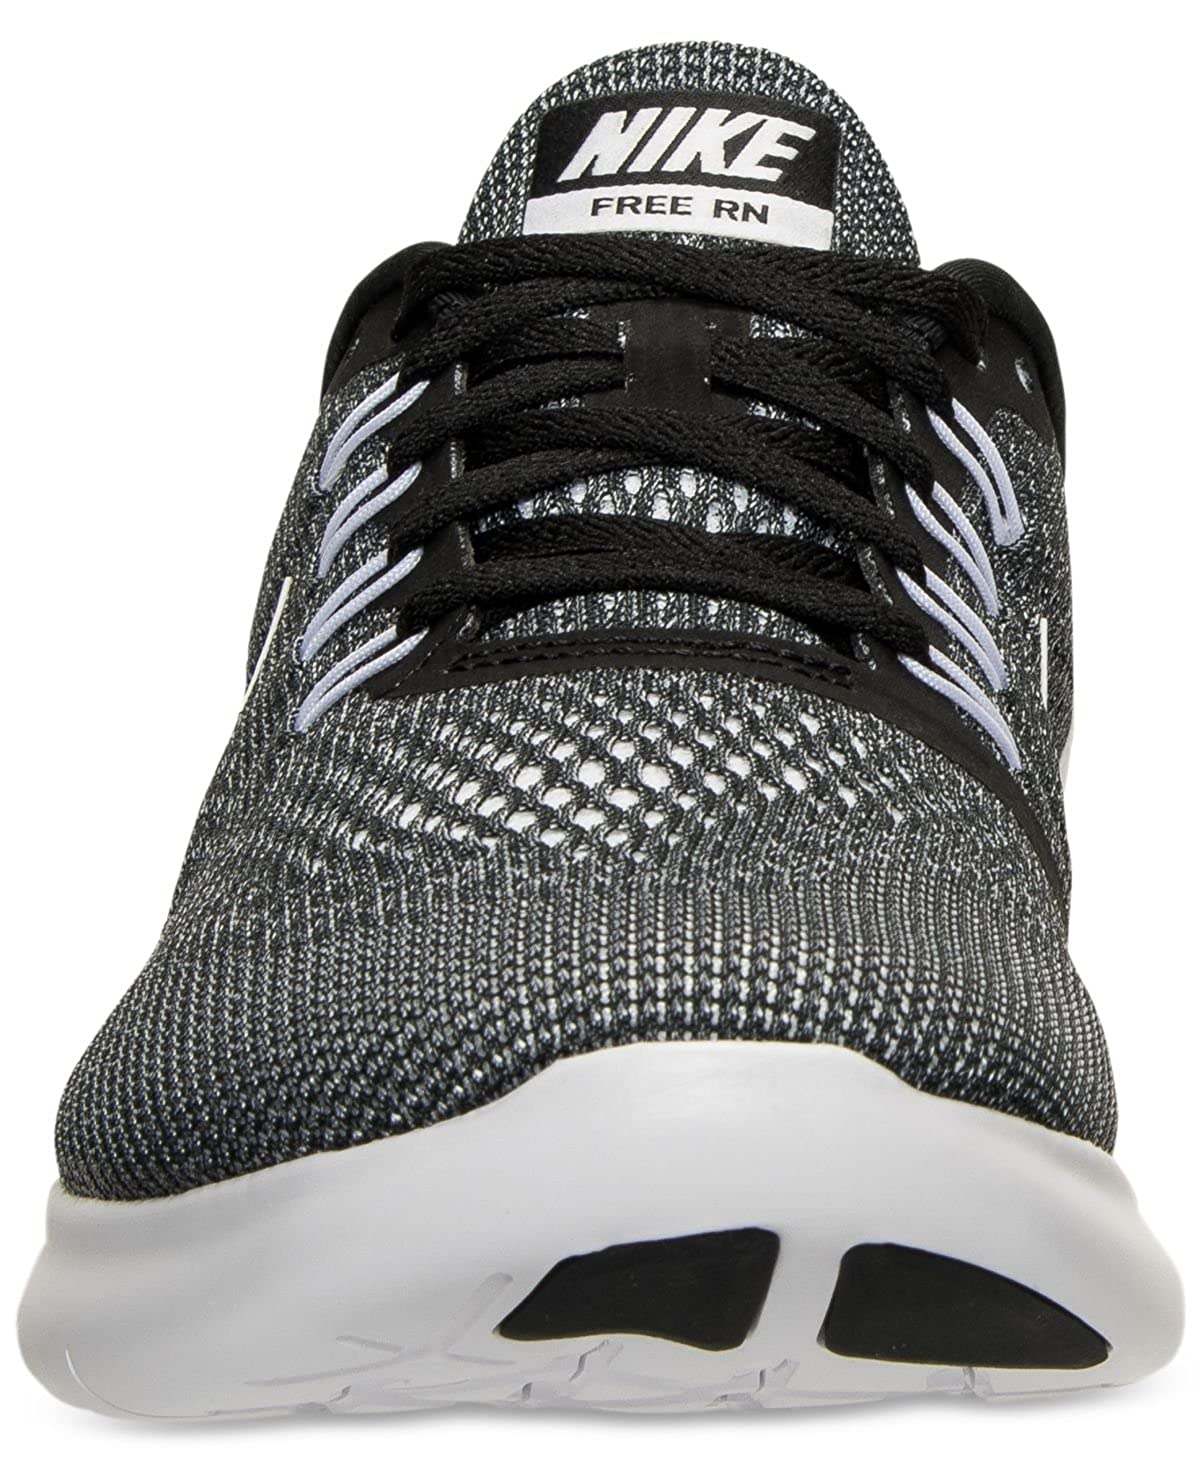 newest 1478f 55ccb Amazon.com   Nike Mens Free Run Running Sneakers from Finish Line Black    Road Running